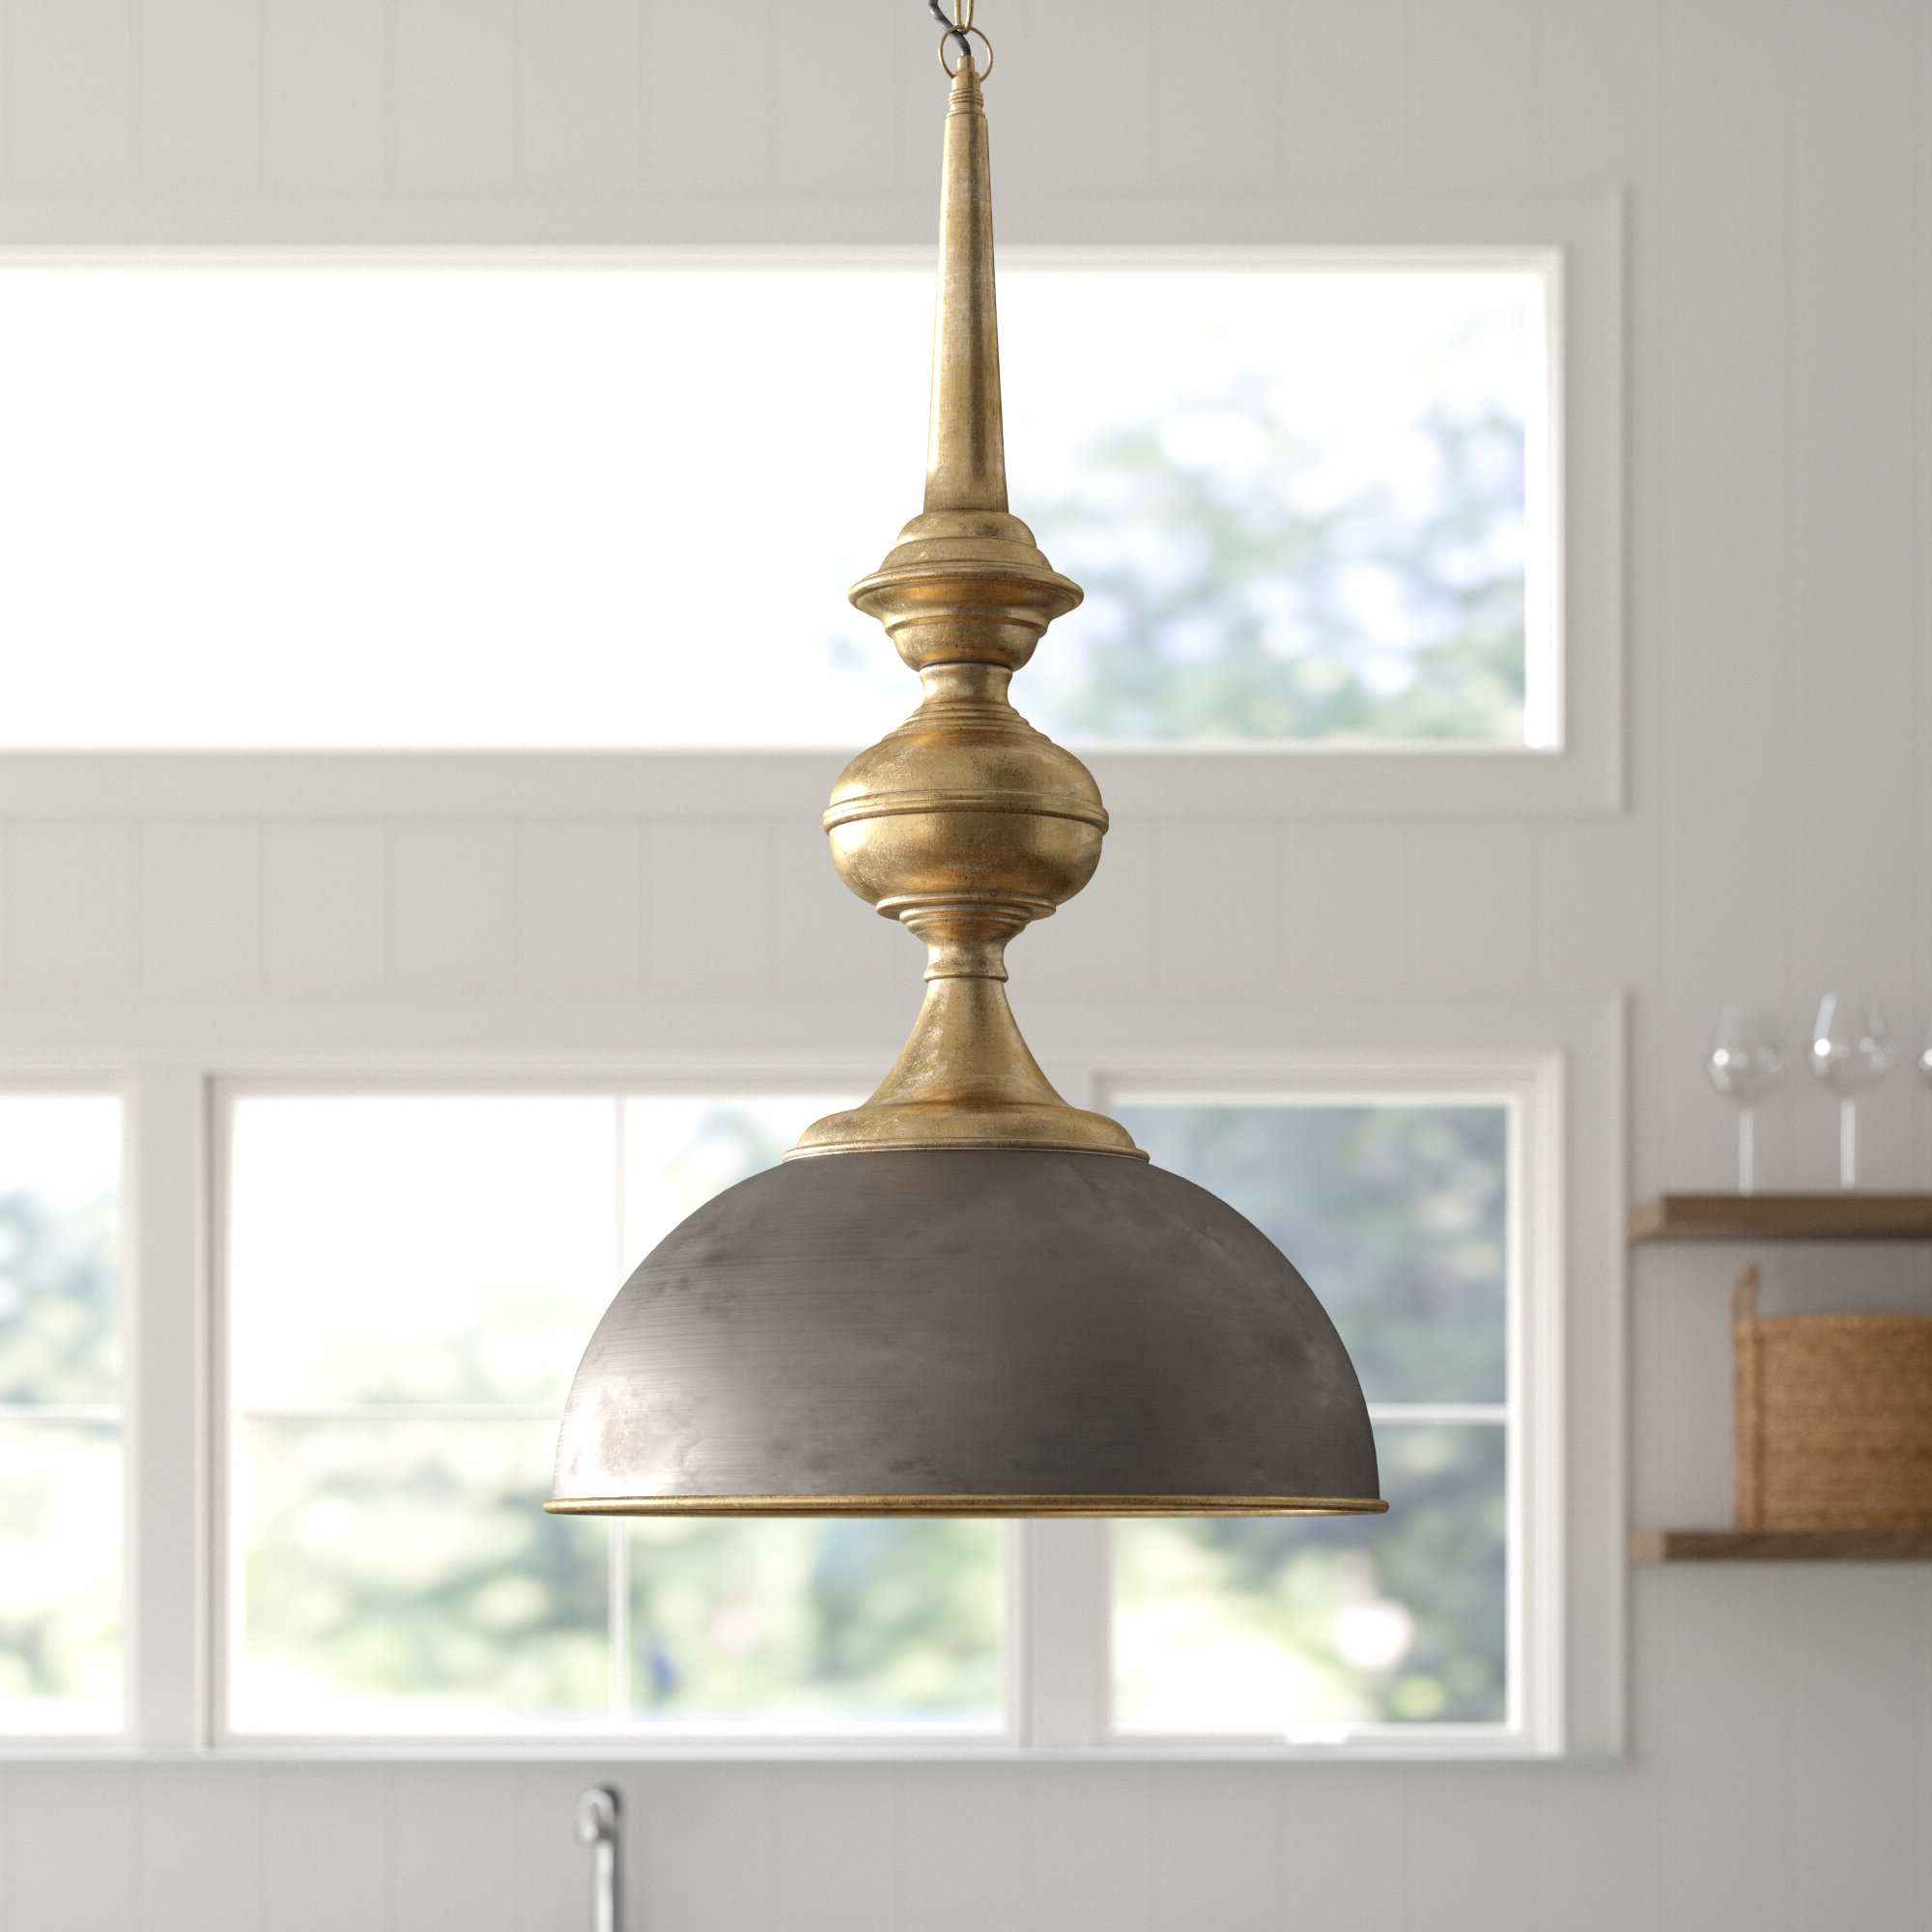 Widely Used Corrine 1 Light Single Dome Pendant Intended For Grullon Scroll 1 Light Single Bell Pendants (View 20 of 20)